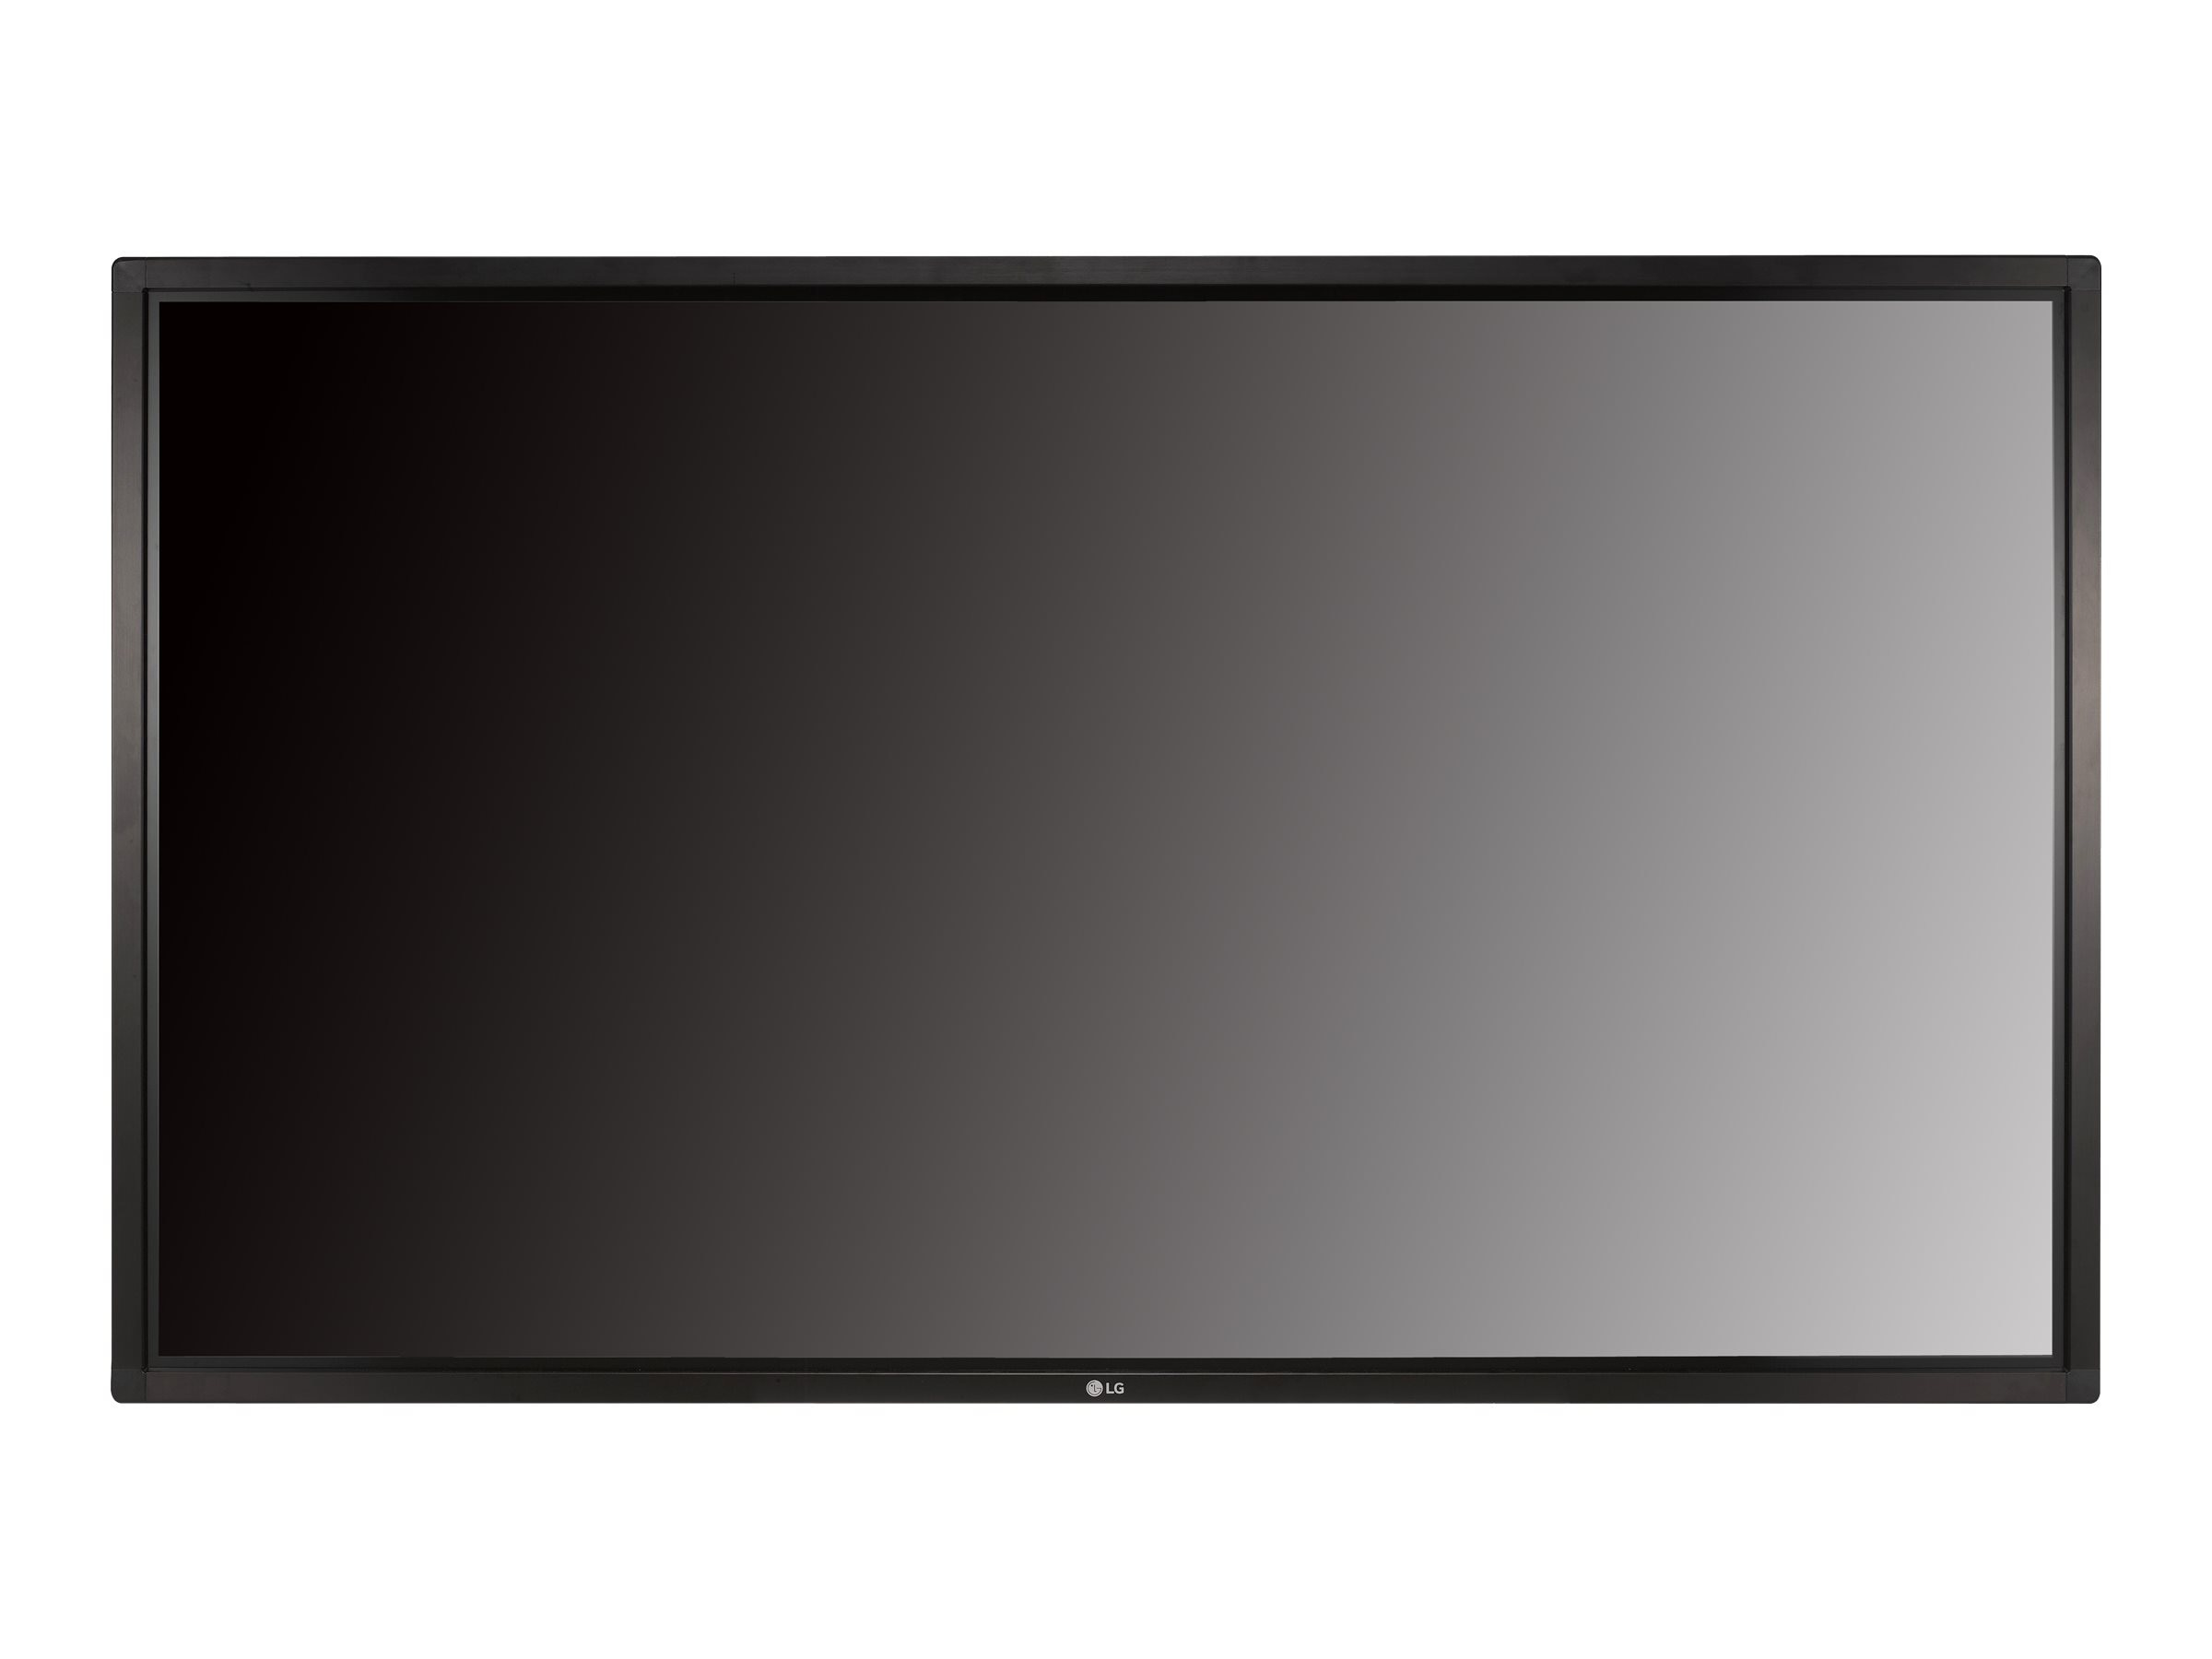 LG 84 TR3B-B Ultra HD LED-LCD Touchscreen Display, Black, 84TR3B-B